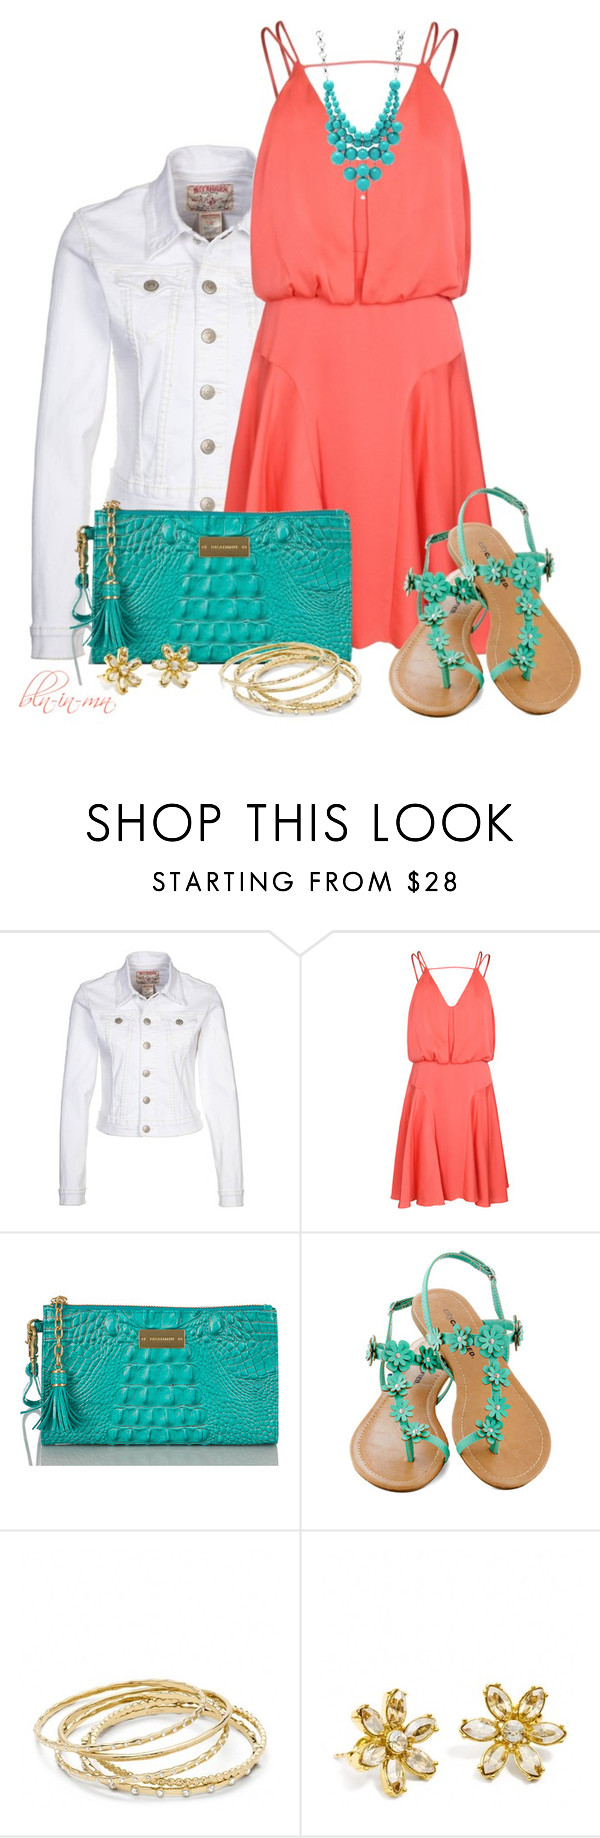 """Coral & Teal"" by bln-in-mn ❤ liked on Polyvore featuring True Religion, Milly, Brahmin, Coach and FOSSIL"